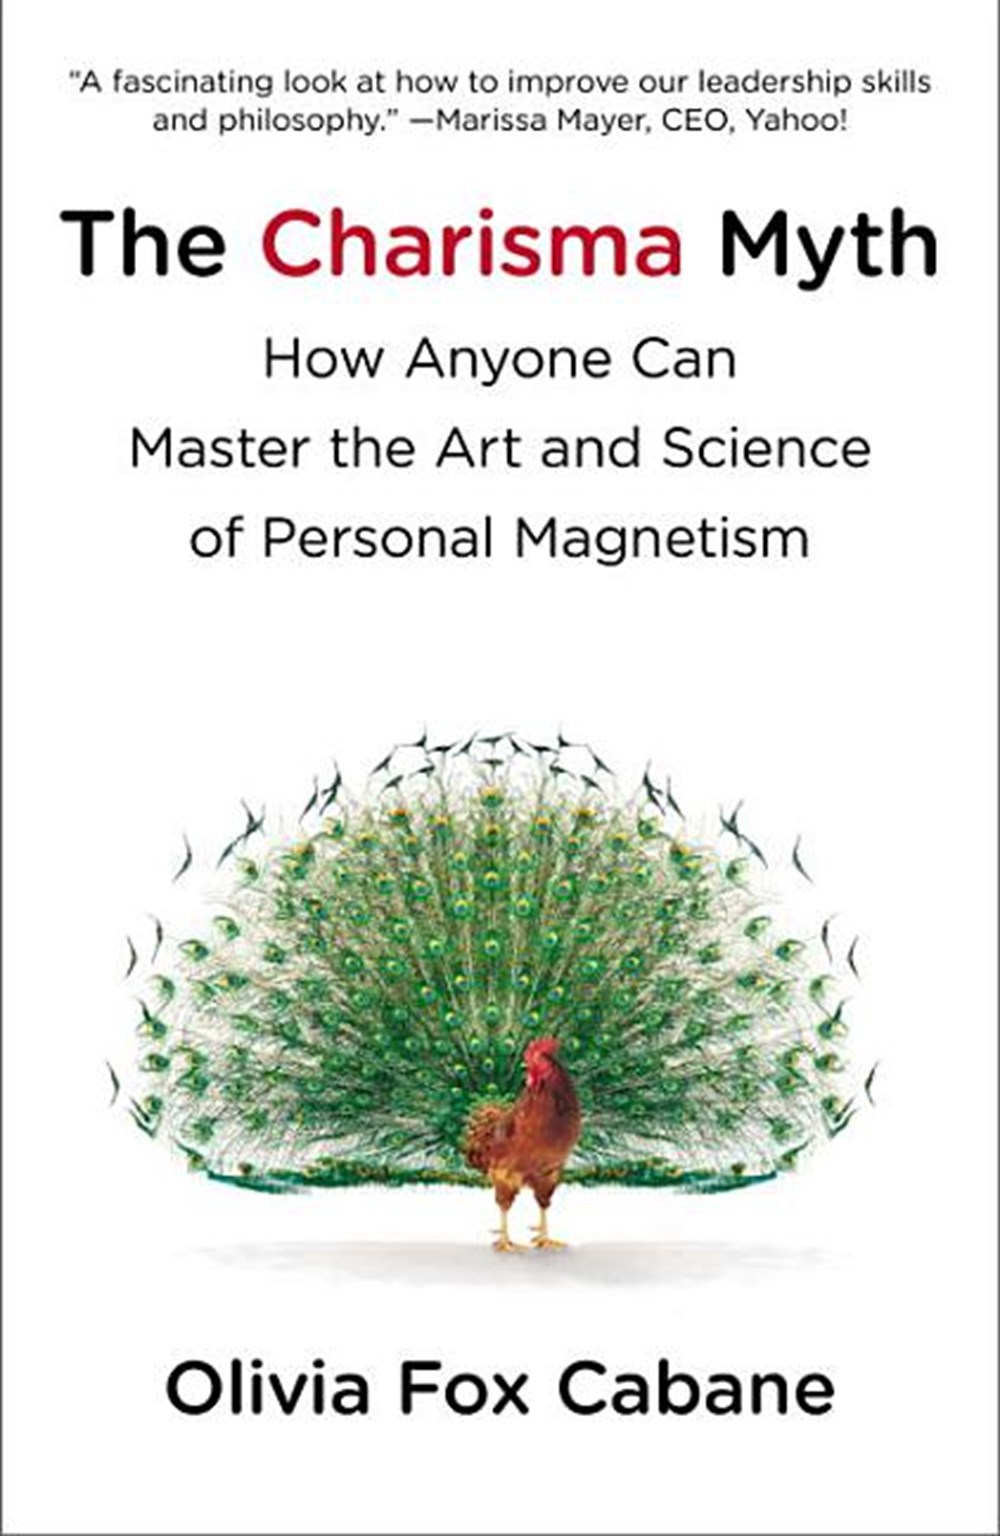 Charisma Myth How Anyone Can Master the Art and Science of Personal Magnetism